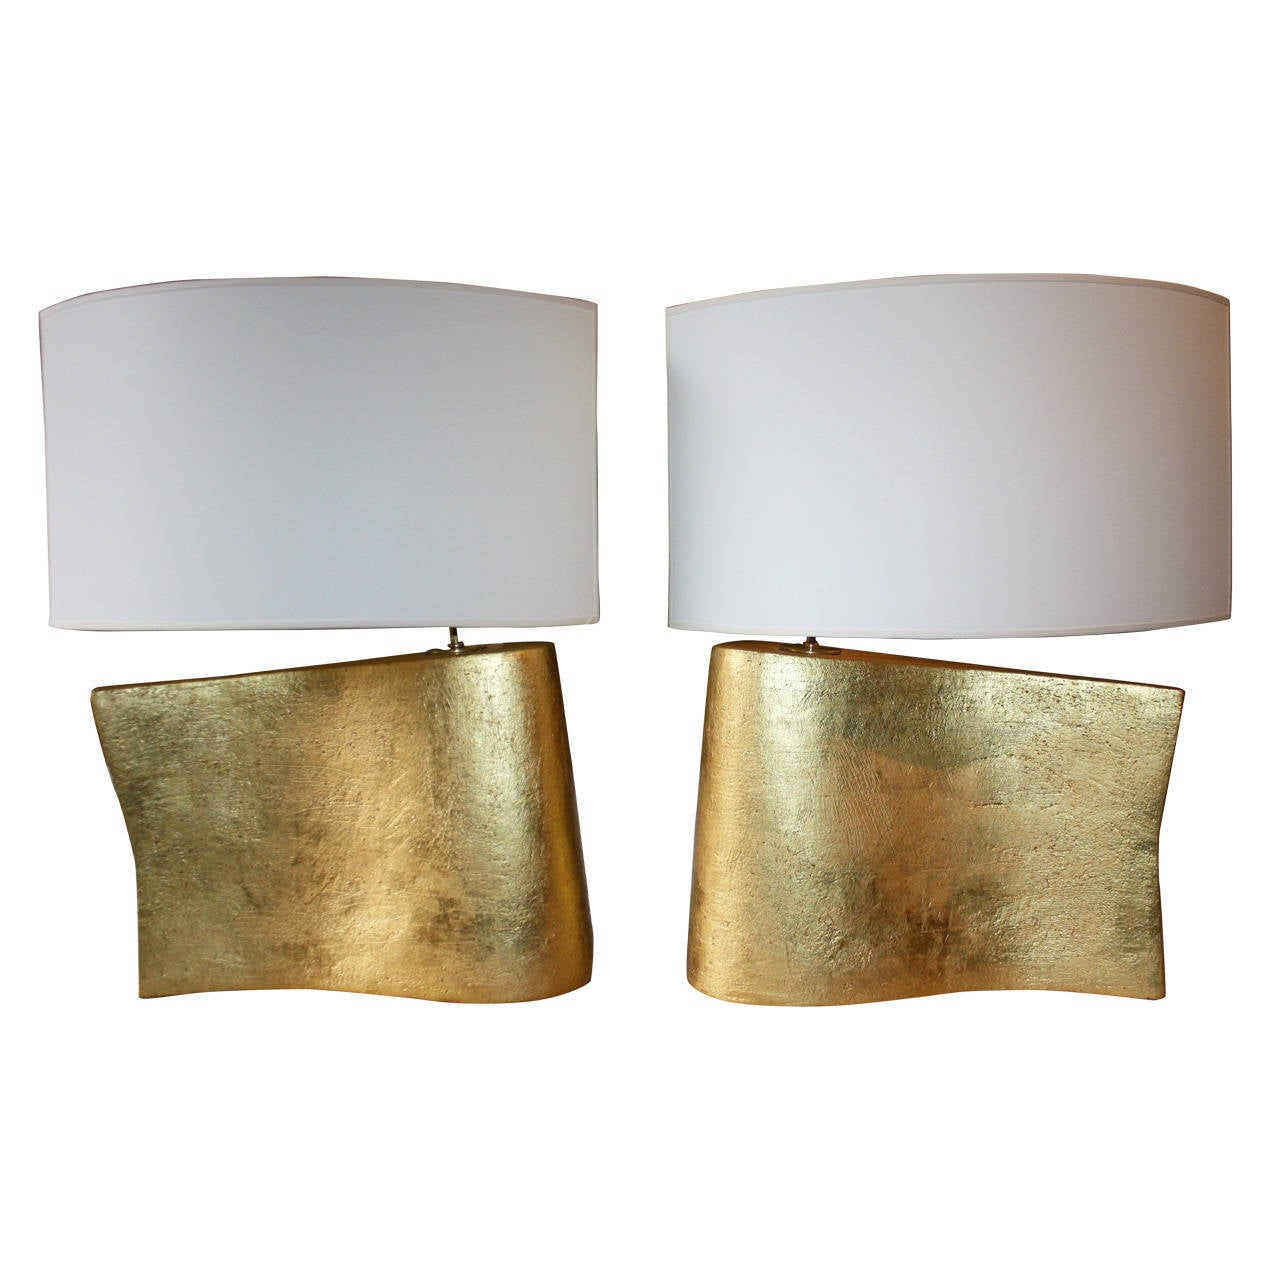 Pair of Hand-Coiled and Gilded Wave Lamps by Andrea Koeppel